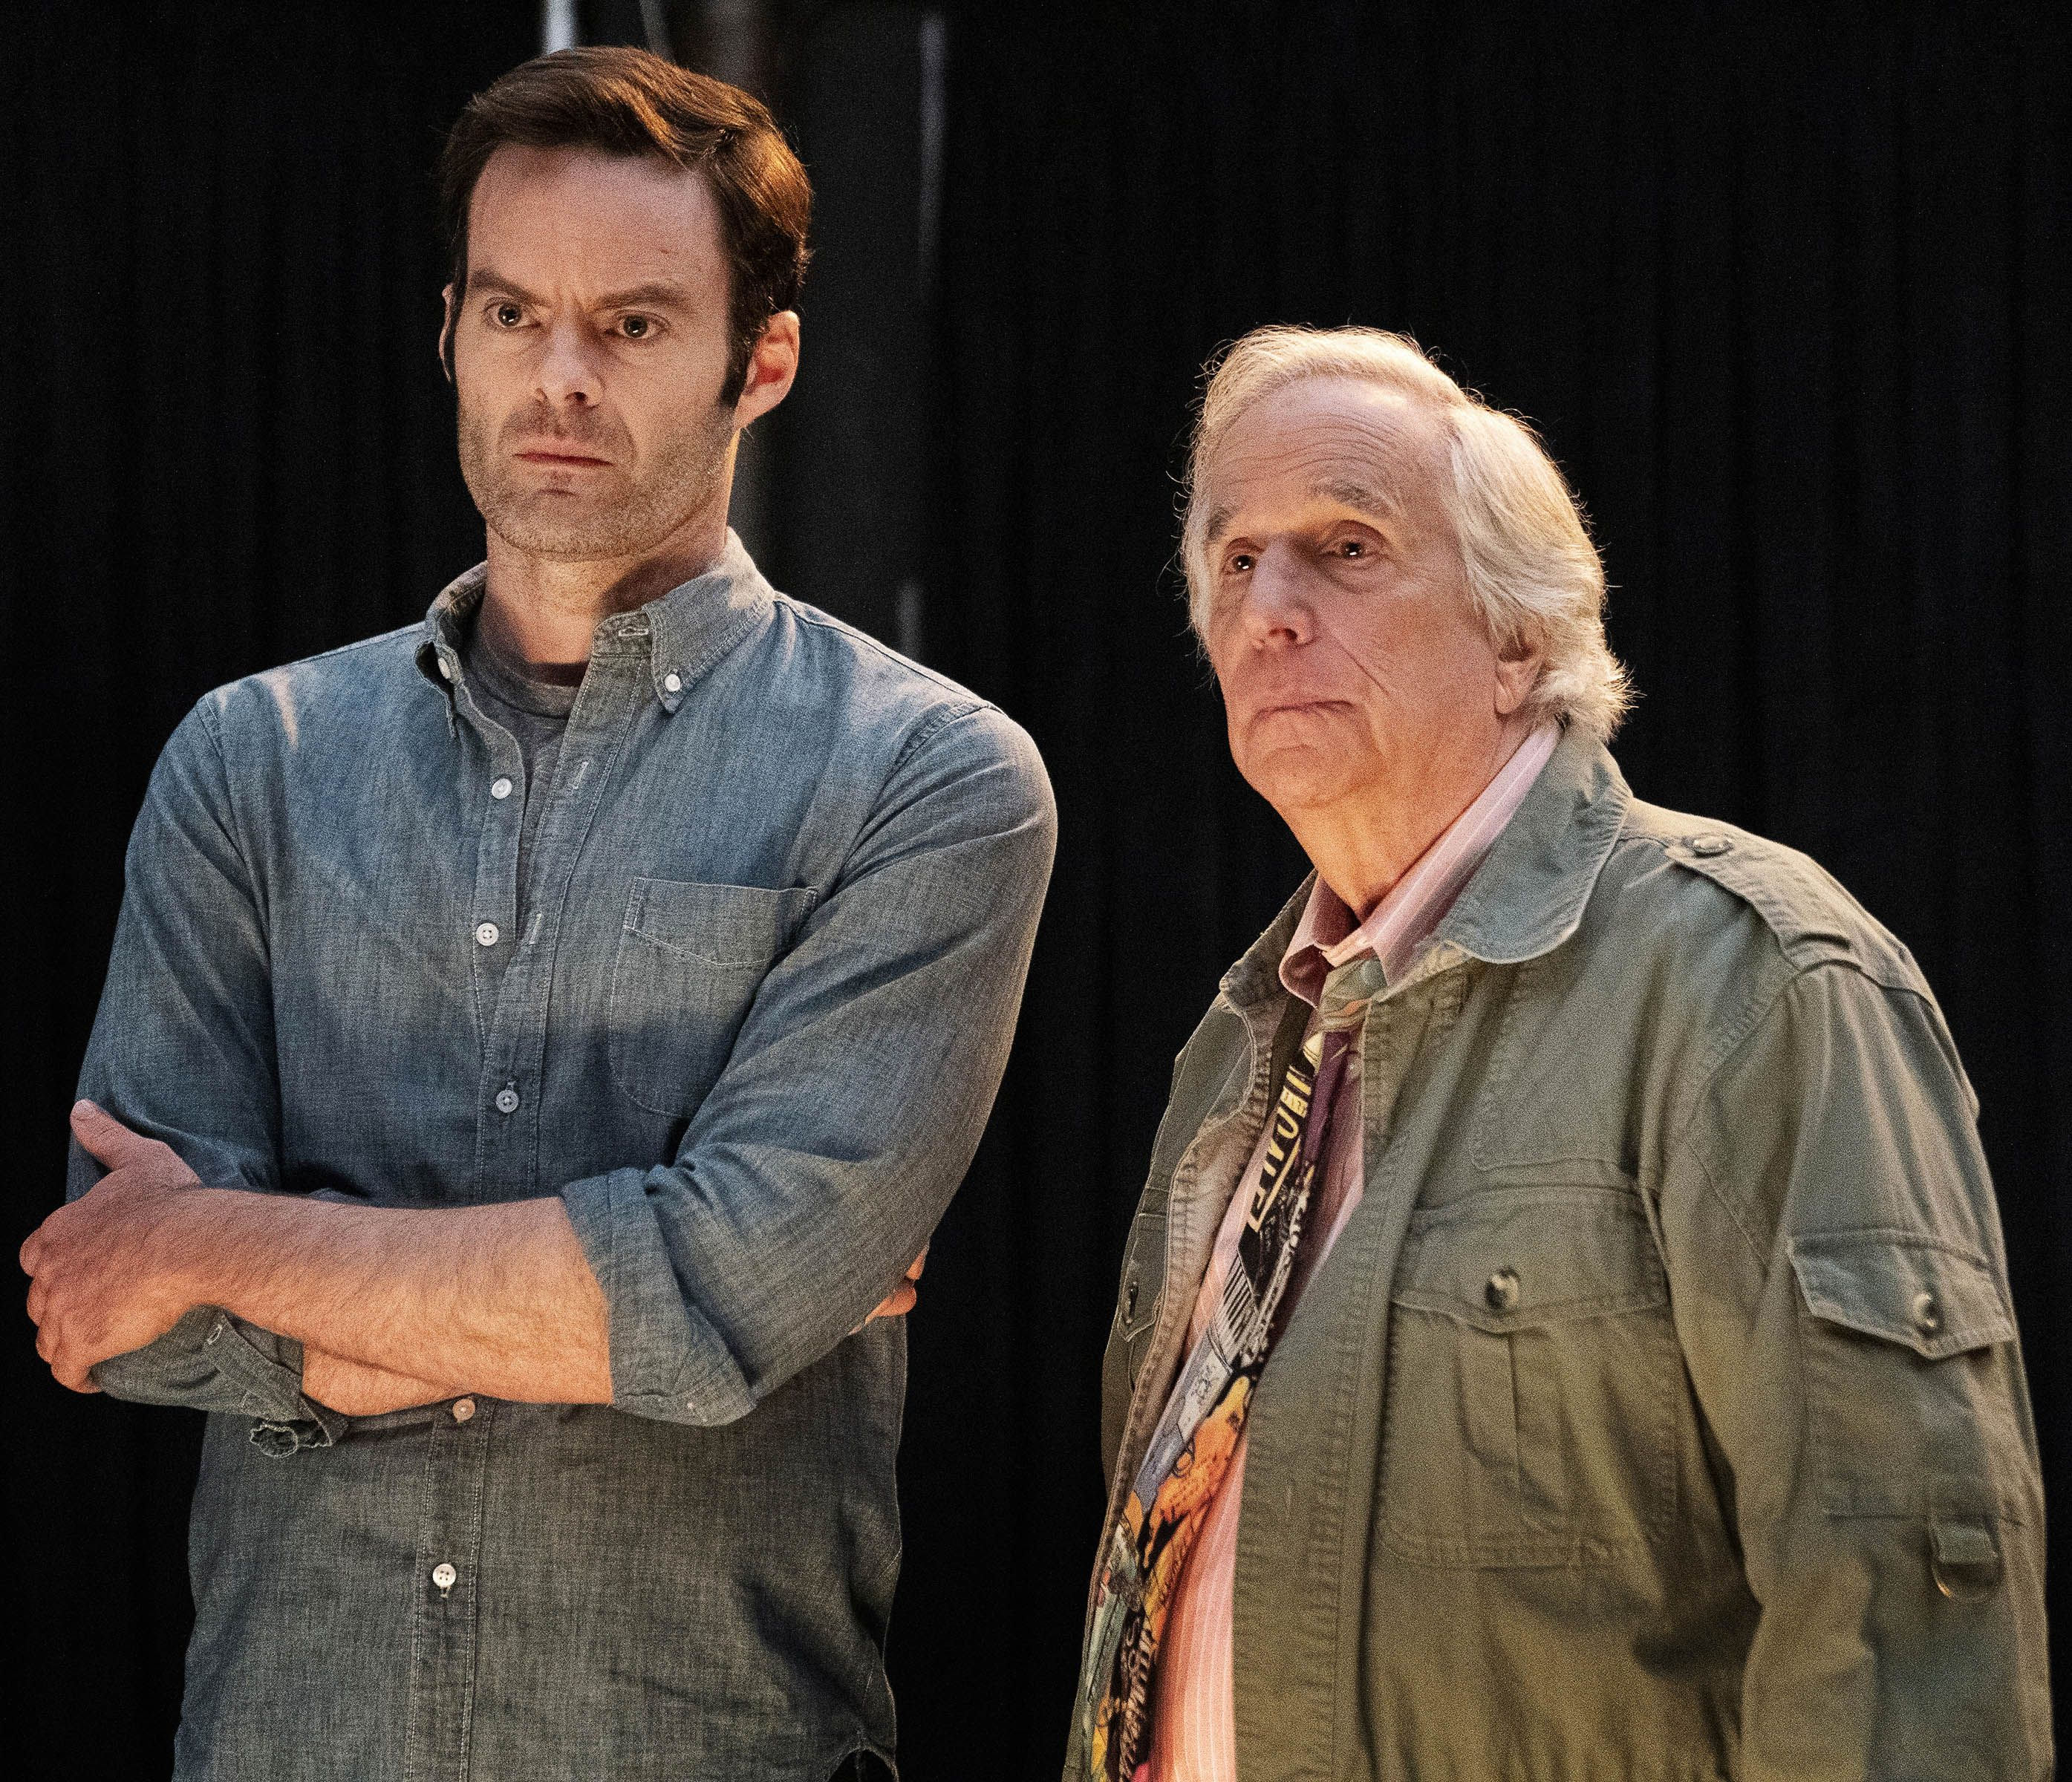 Bill Hader and Henry Winkler on the set of Barry .